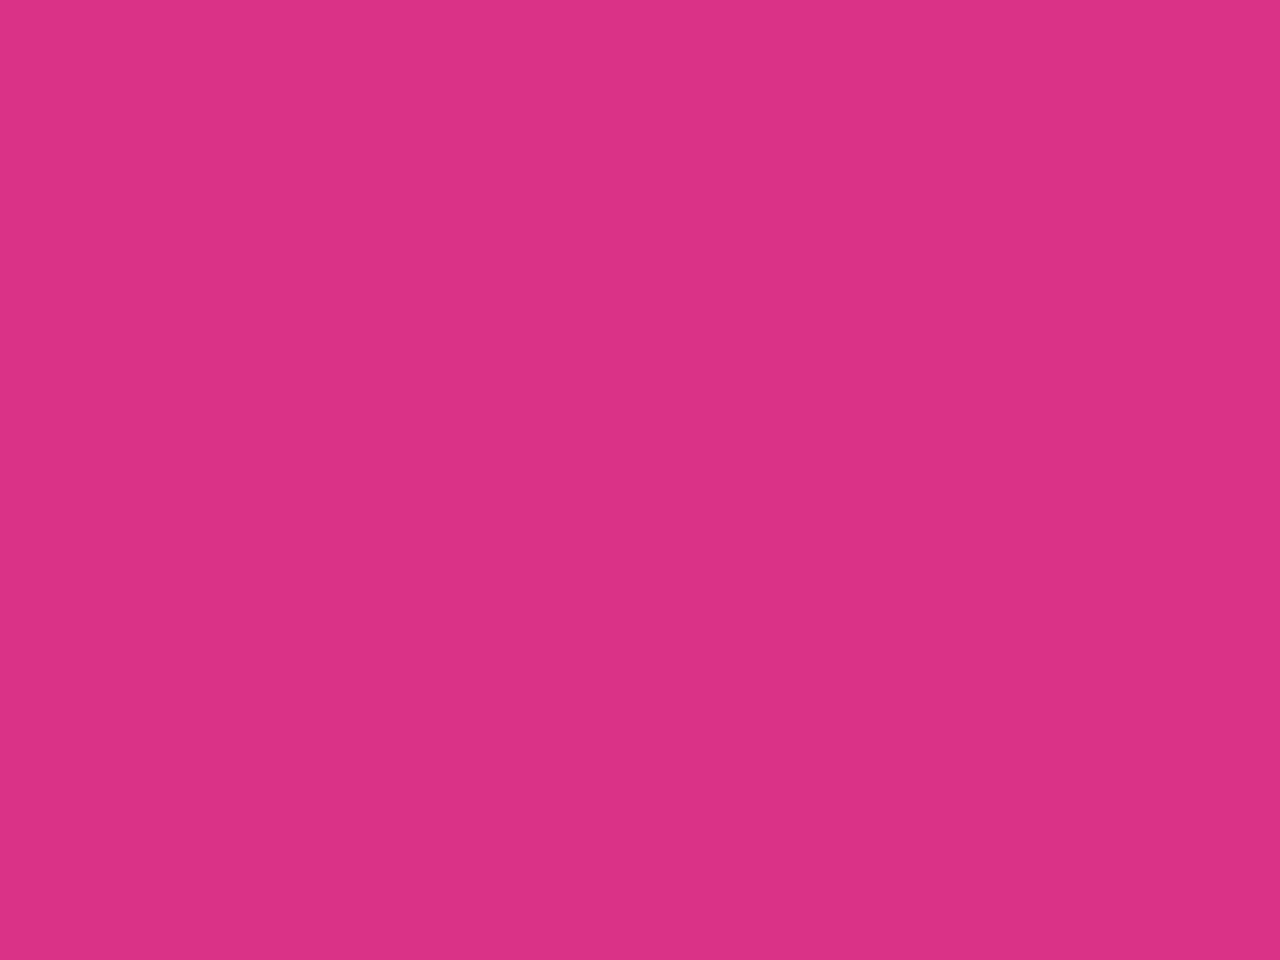 1280x960 Deep Cerise Solid Color Background